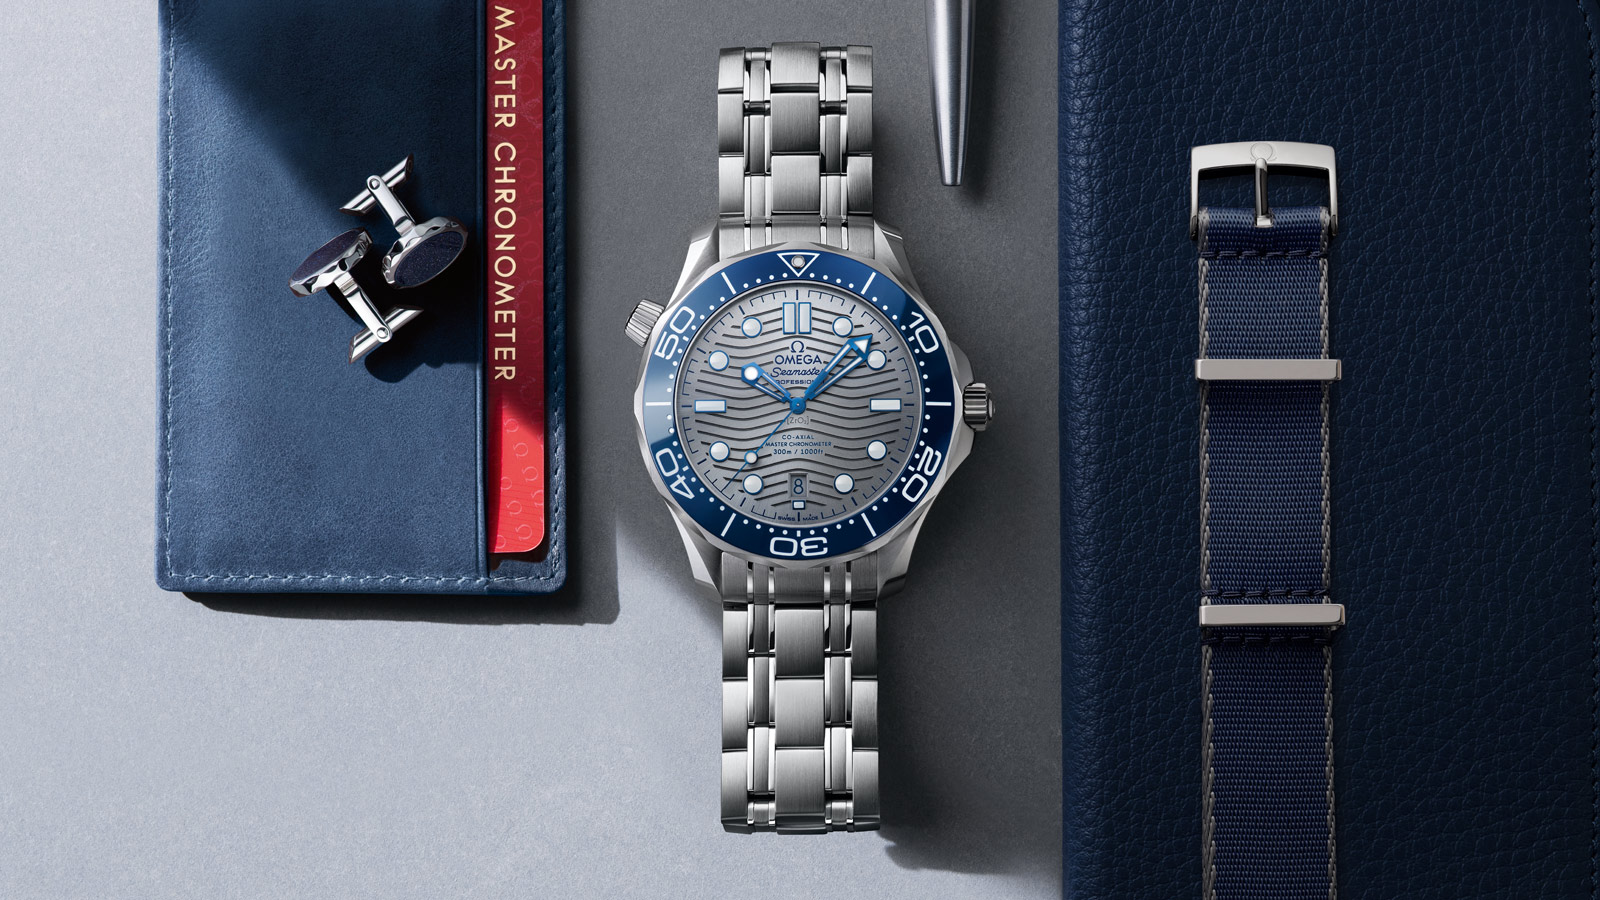 Seamaster Diver 300 M Diver 300M Omega Co‑Axial Master Chronometer 42 mm Watch - 210.30.42.20.06.001